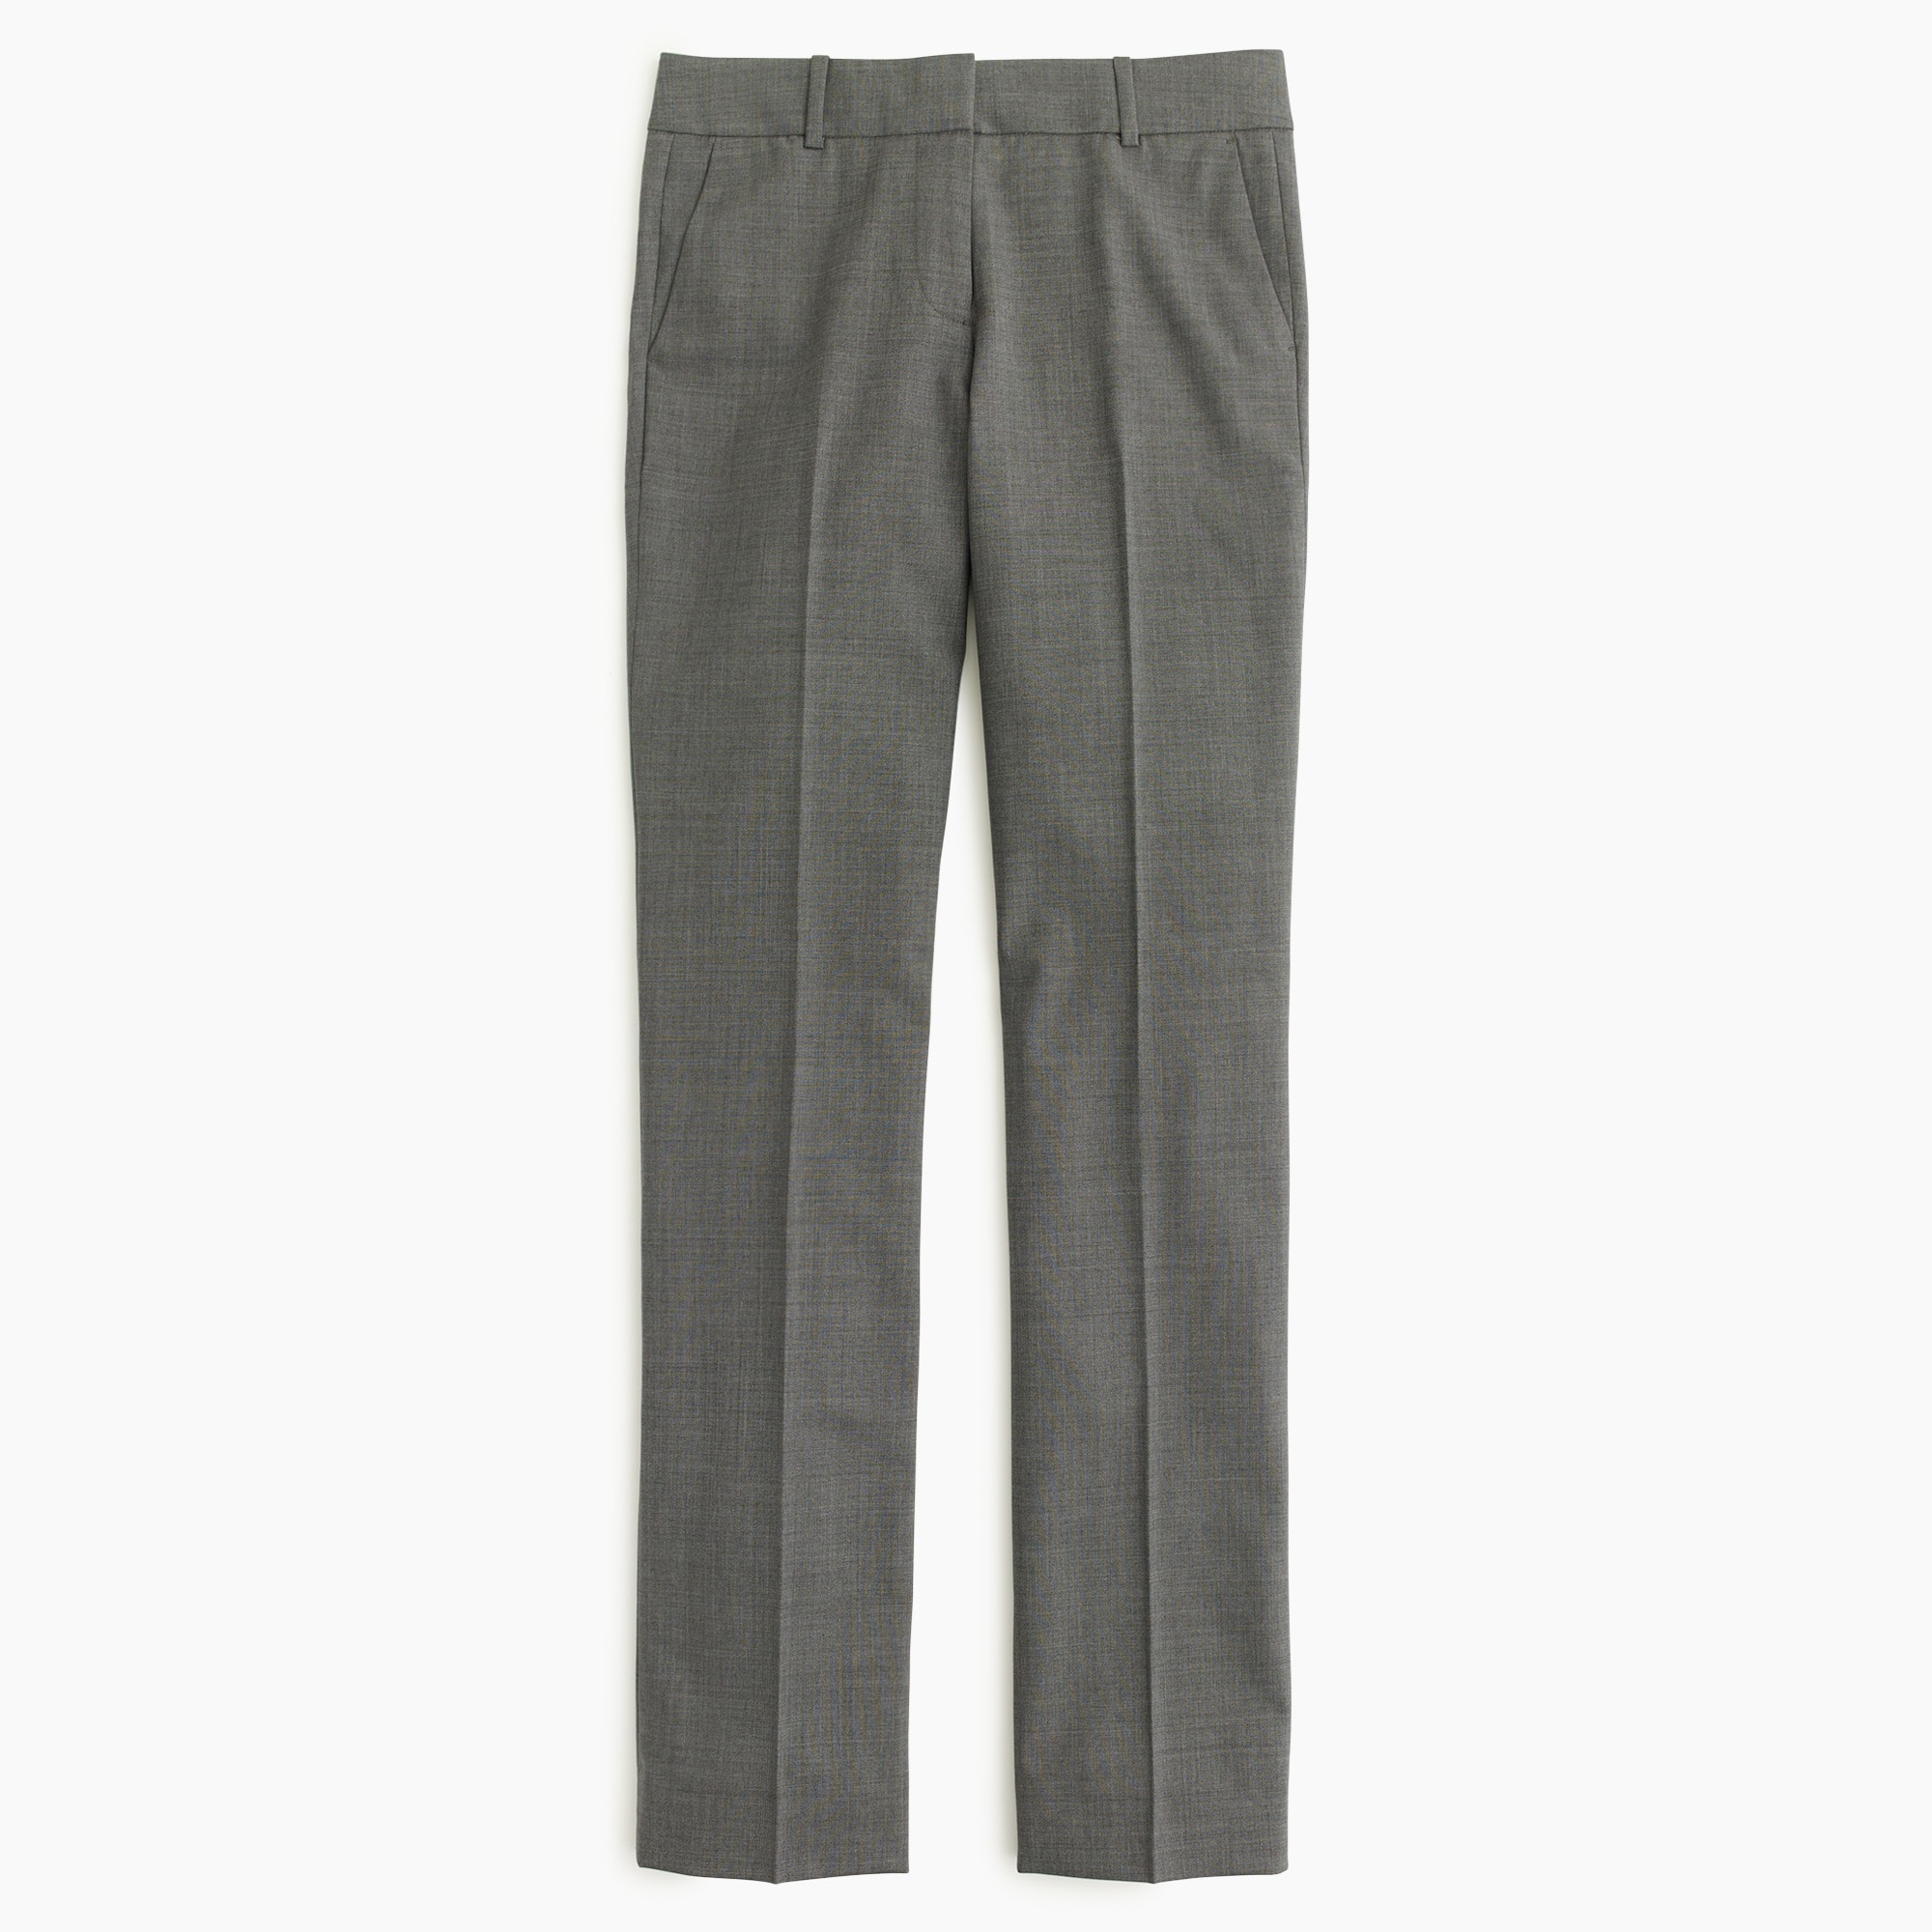 Petite Campbell trouser in Italian stretch wool